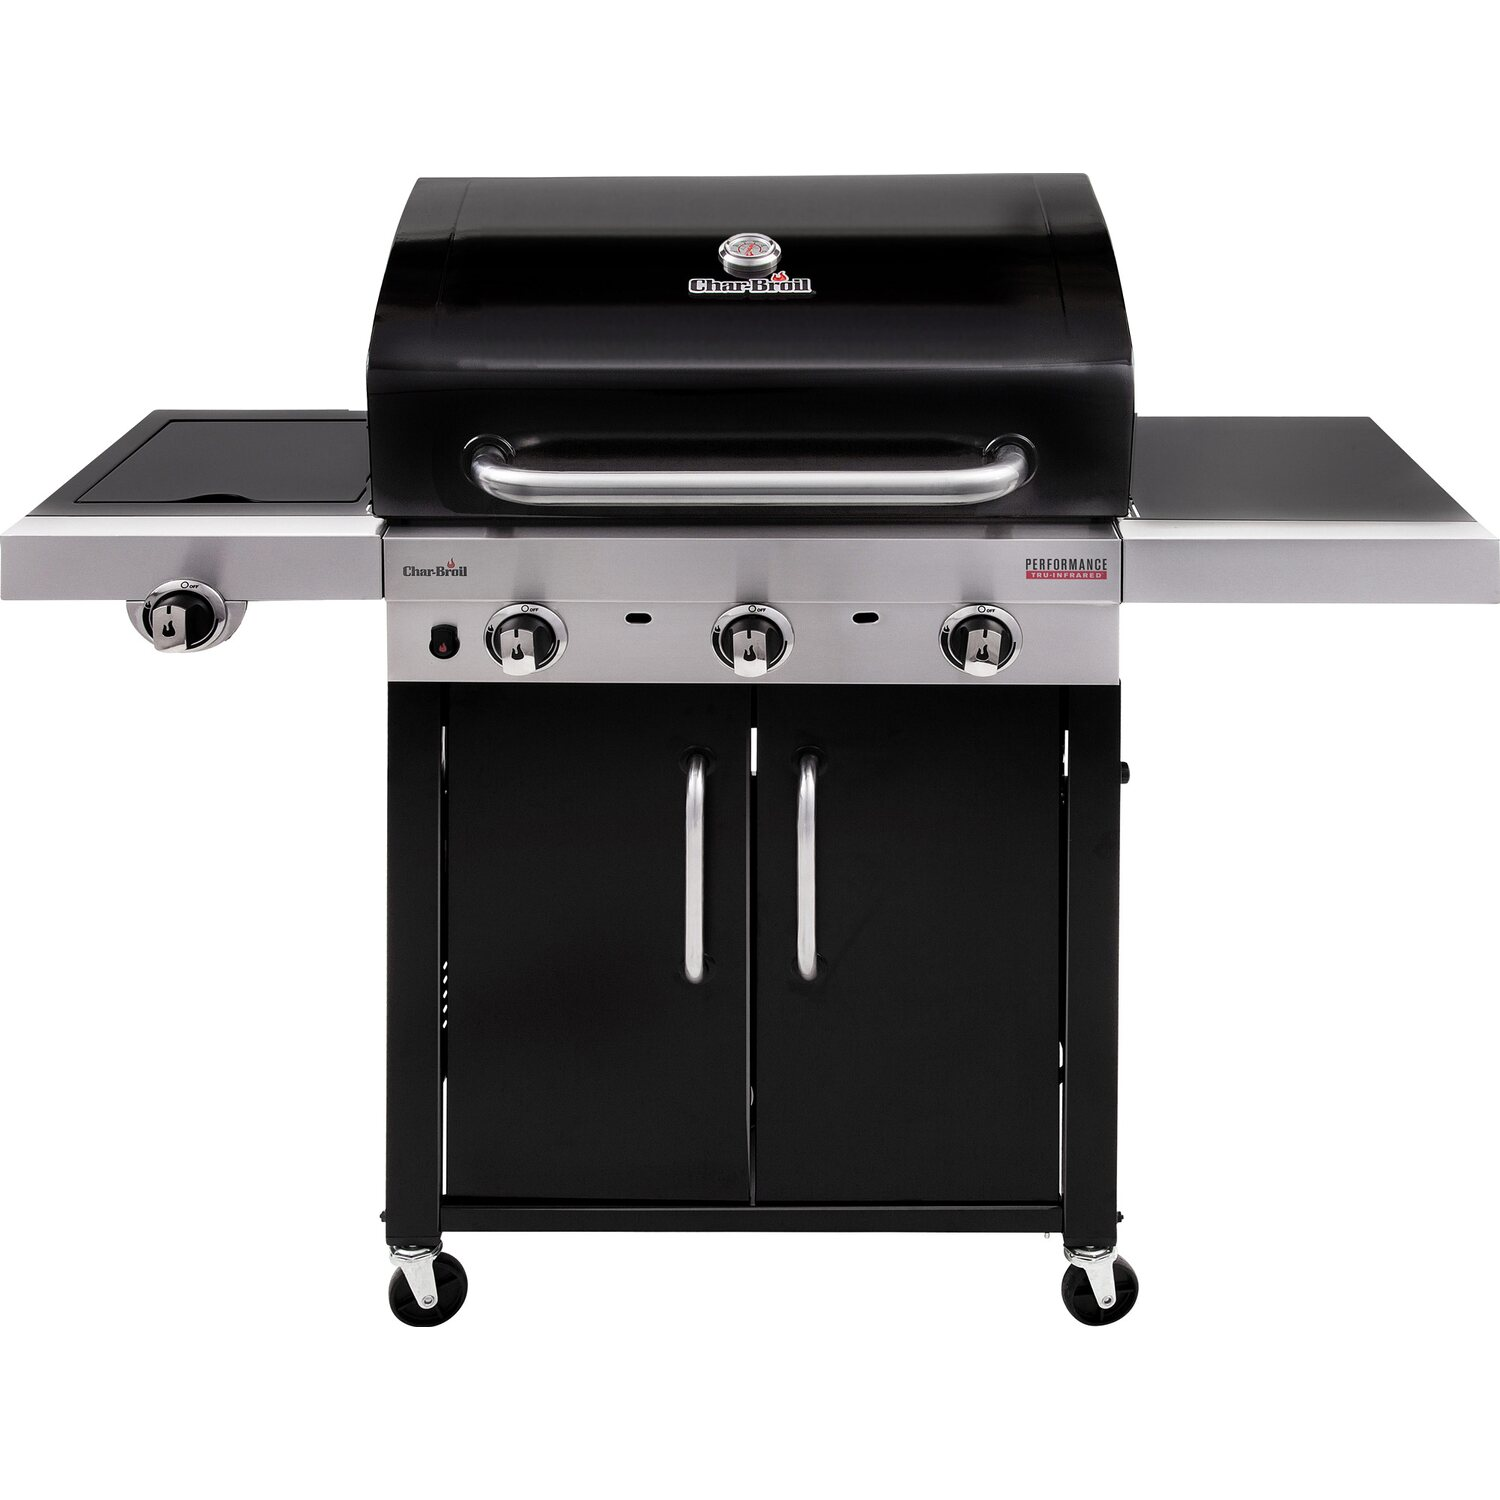 Char broil gasgrill performance 340 b mit 3 brennern tru for Outdoorkuche mit gasgrill